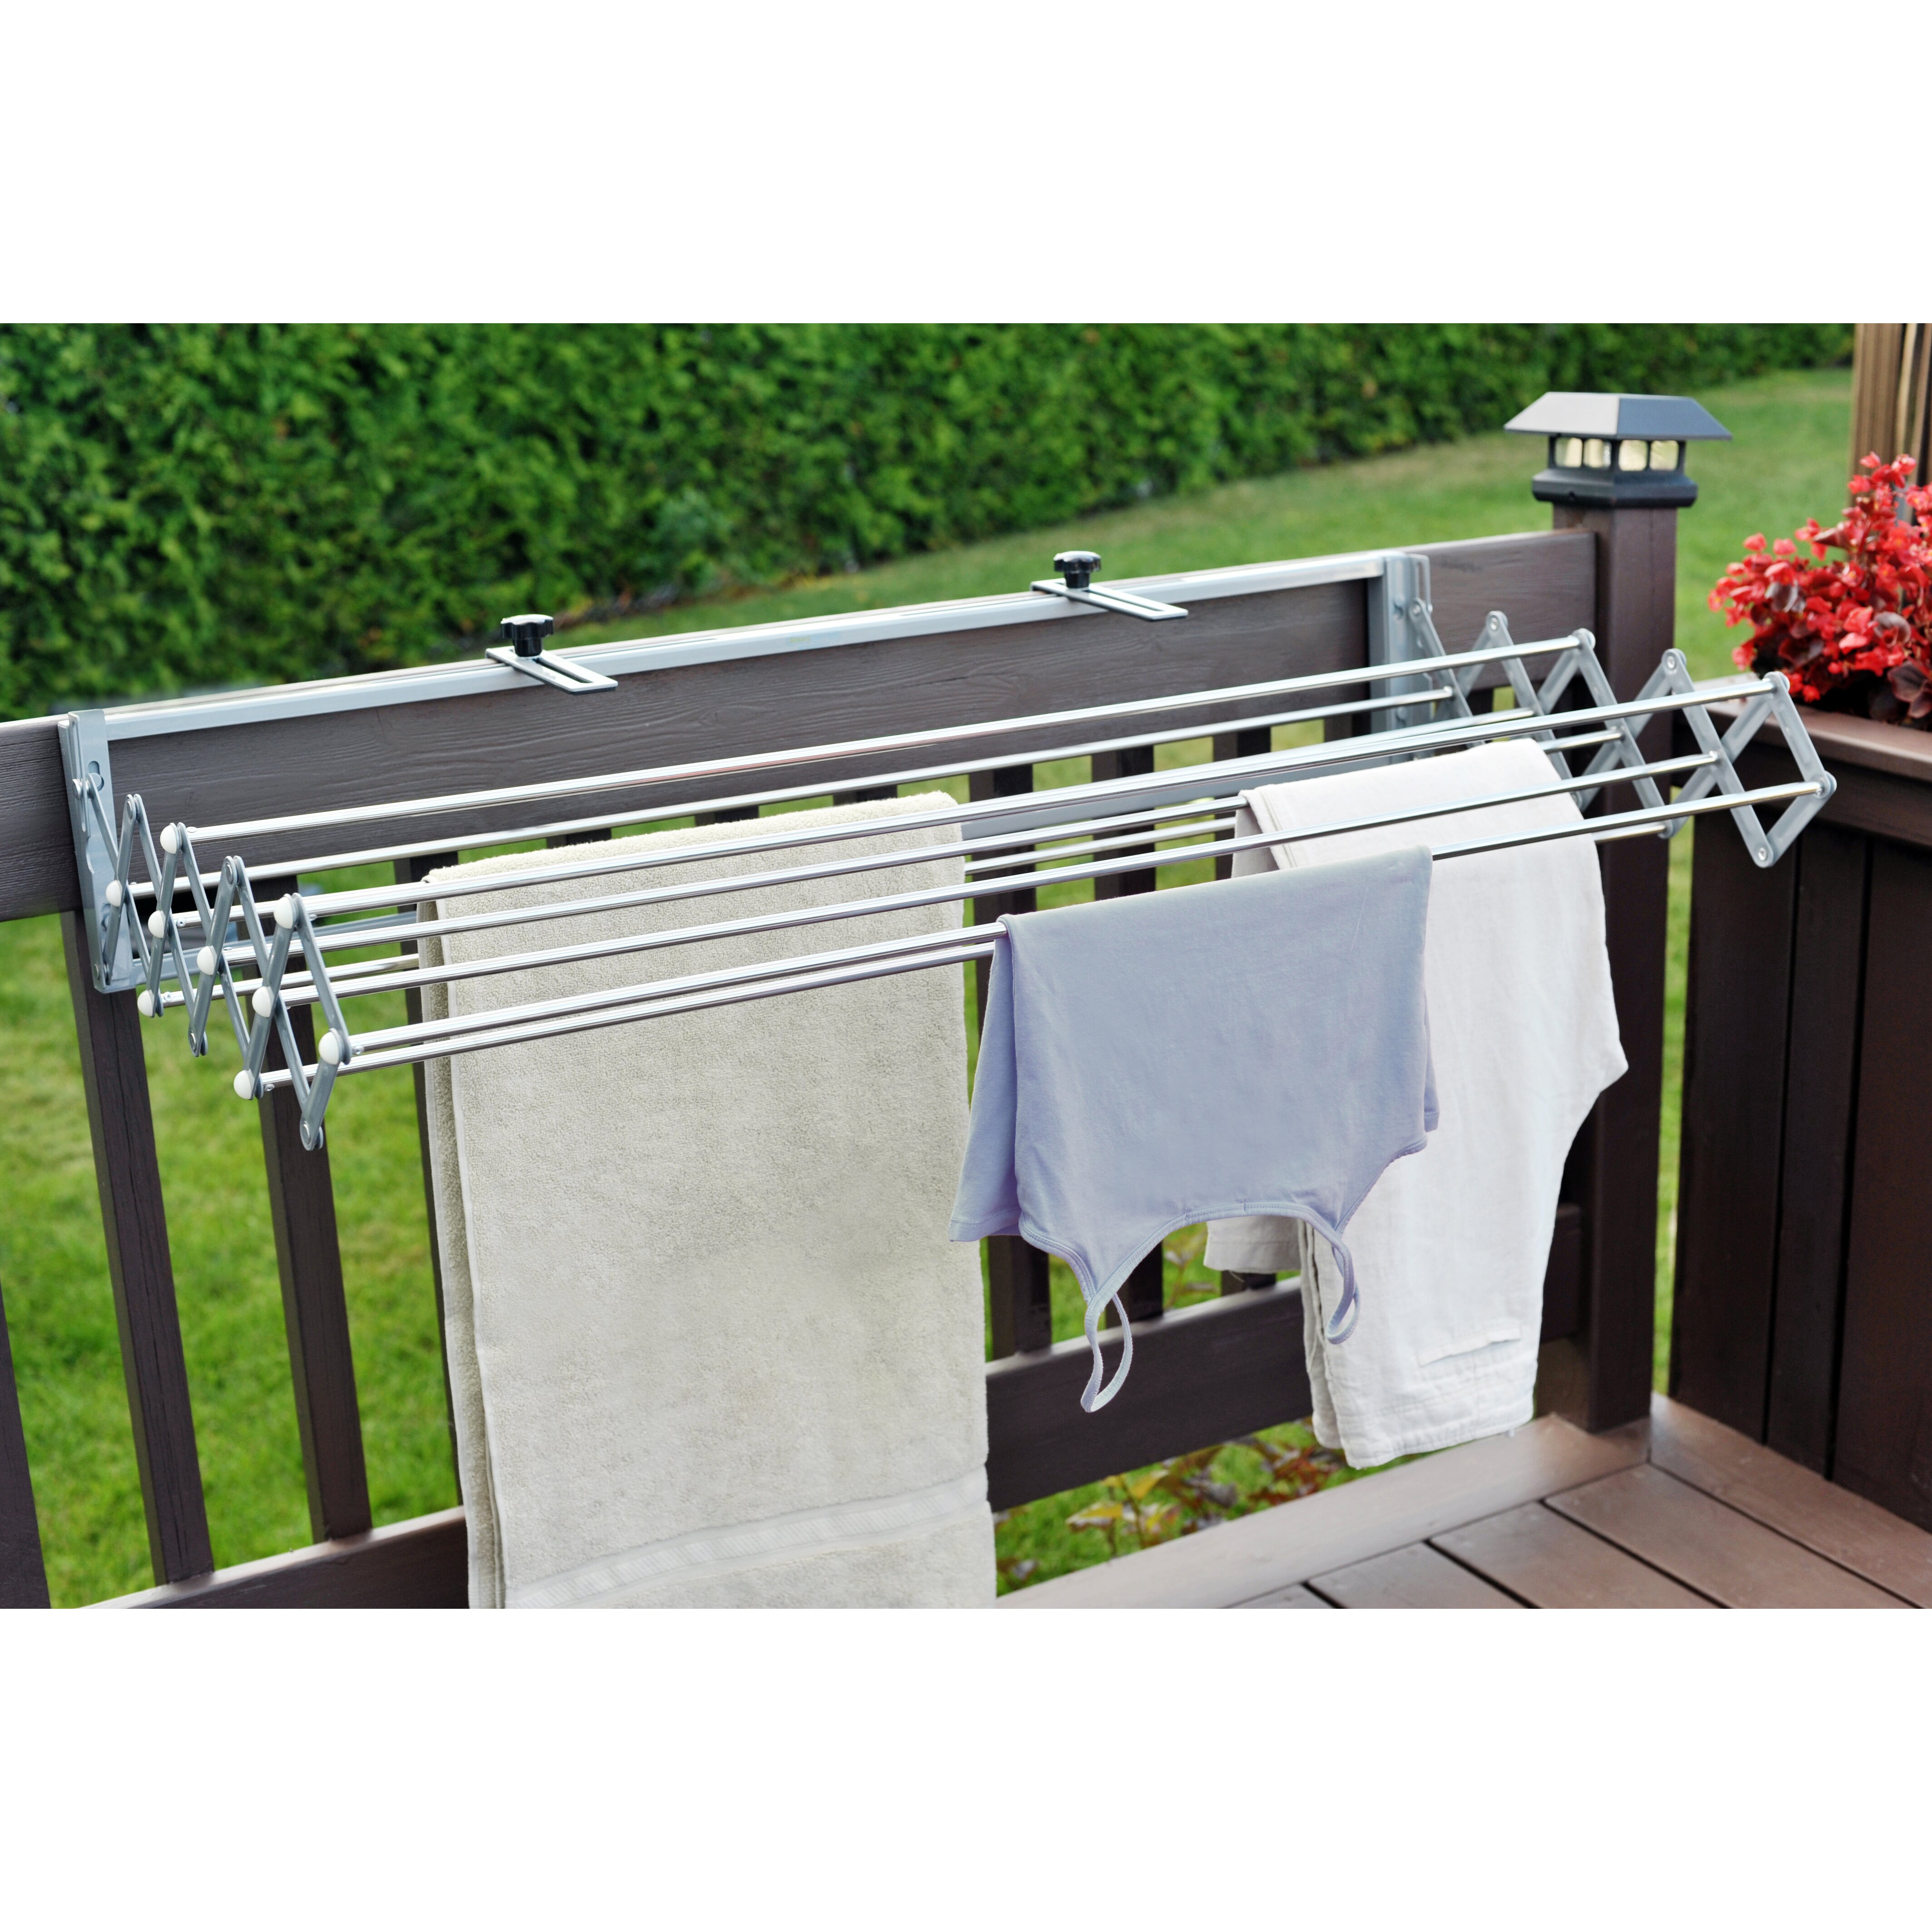 xcentrik smart dryer telescopic clothes drying rack reviews wayfair. Black Bedroom Furniture Sets. Home Design Ideas